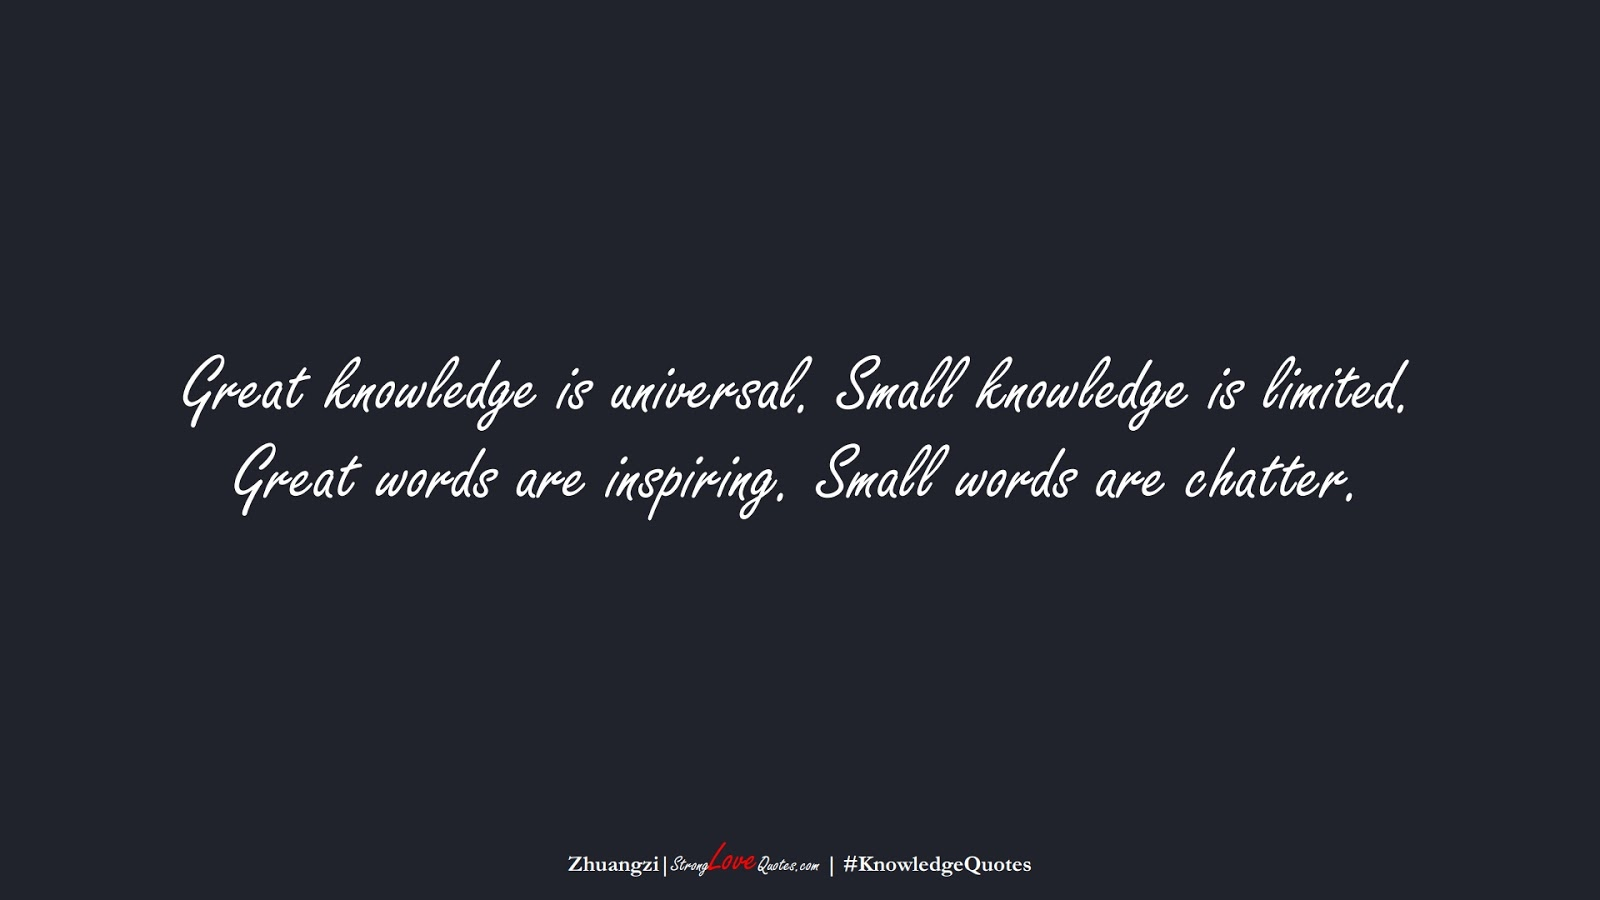 Great knowledge is universal. Small knowledge is limited. Great words are inspiring. Small words are chatter. (Zhuangzi);  #KnowledgeQuotes